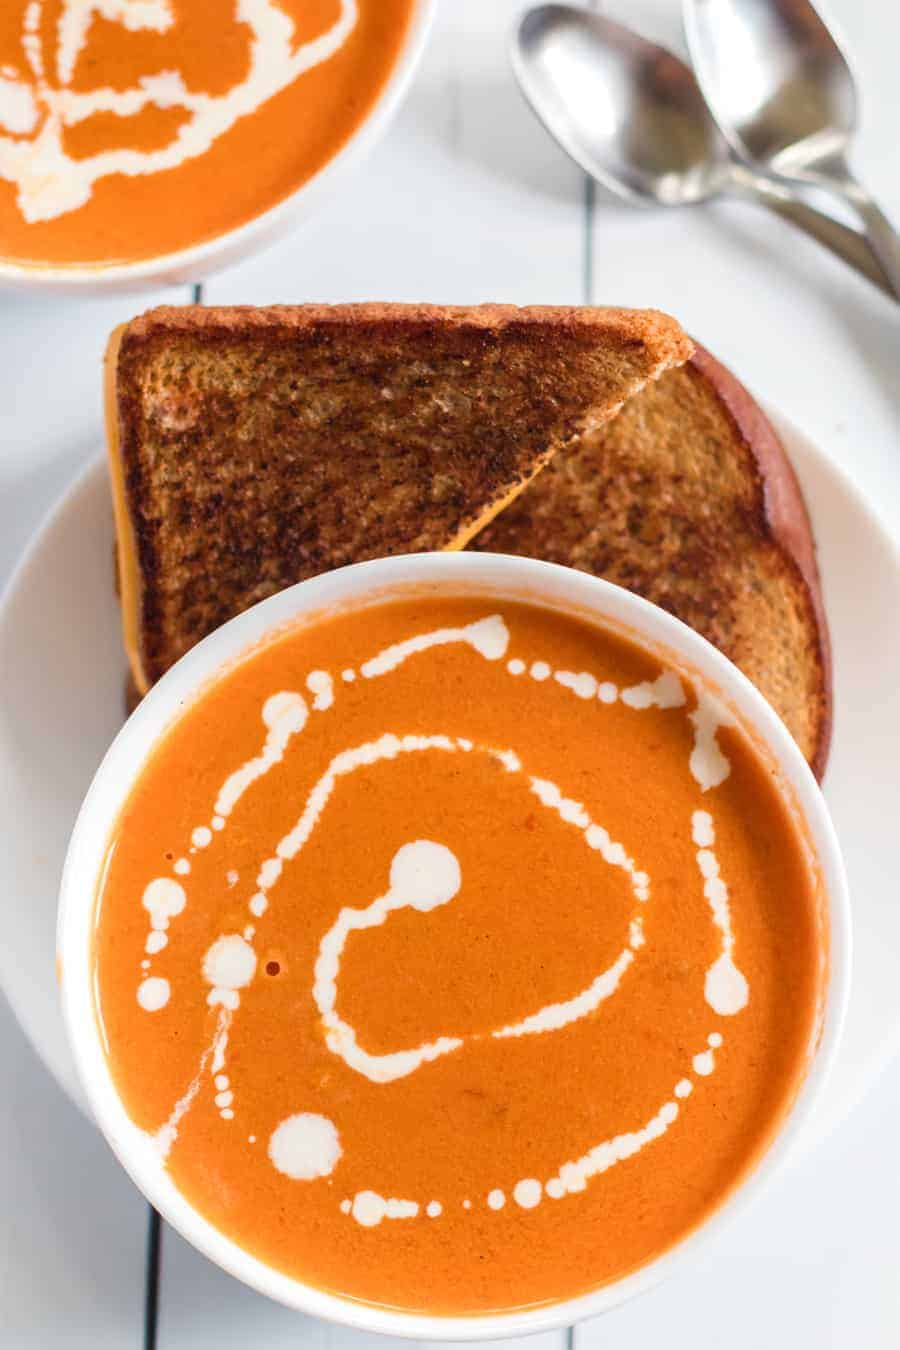 Simple Cream of Tomato Soup comes together quickly to make a creamy and lush soup with canned tomatoes, some onion and garlic, a little butter, and a few splashes of chicken broth and whole cream.